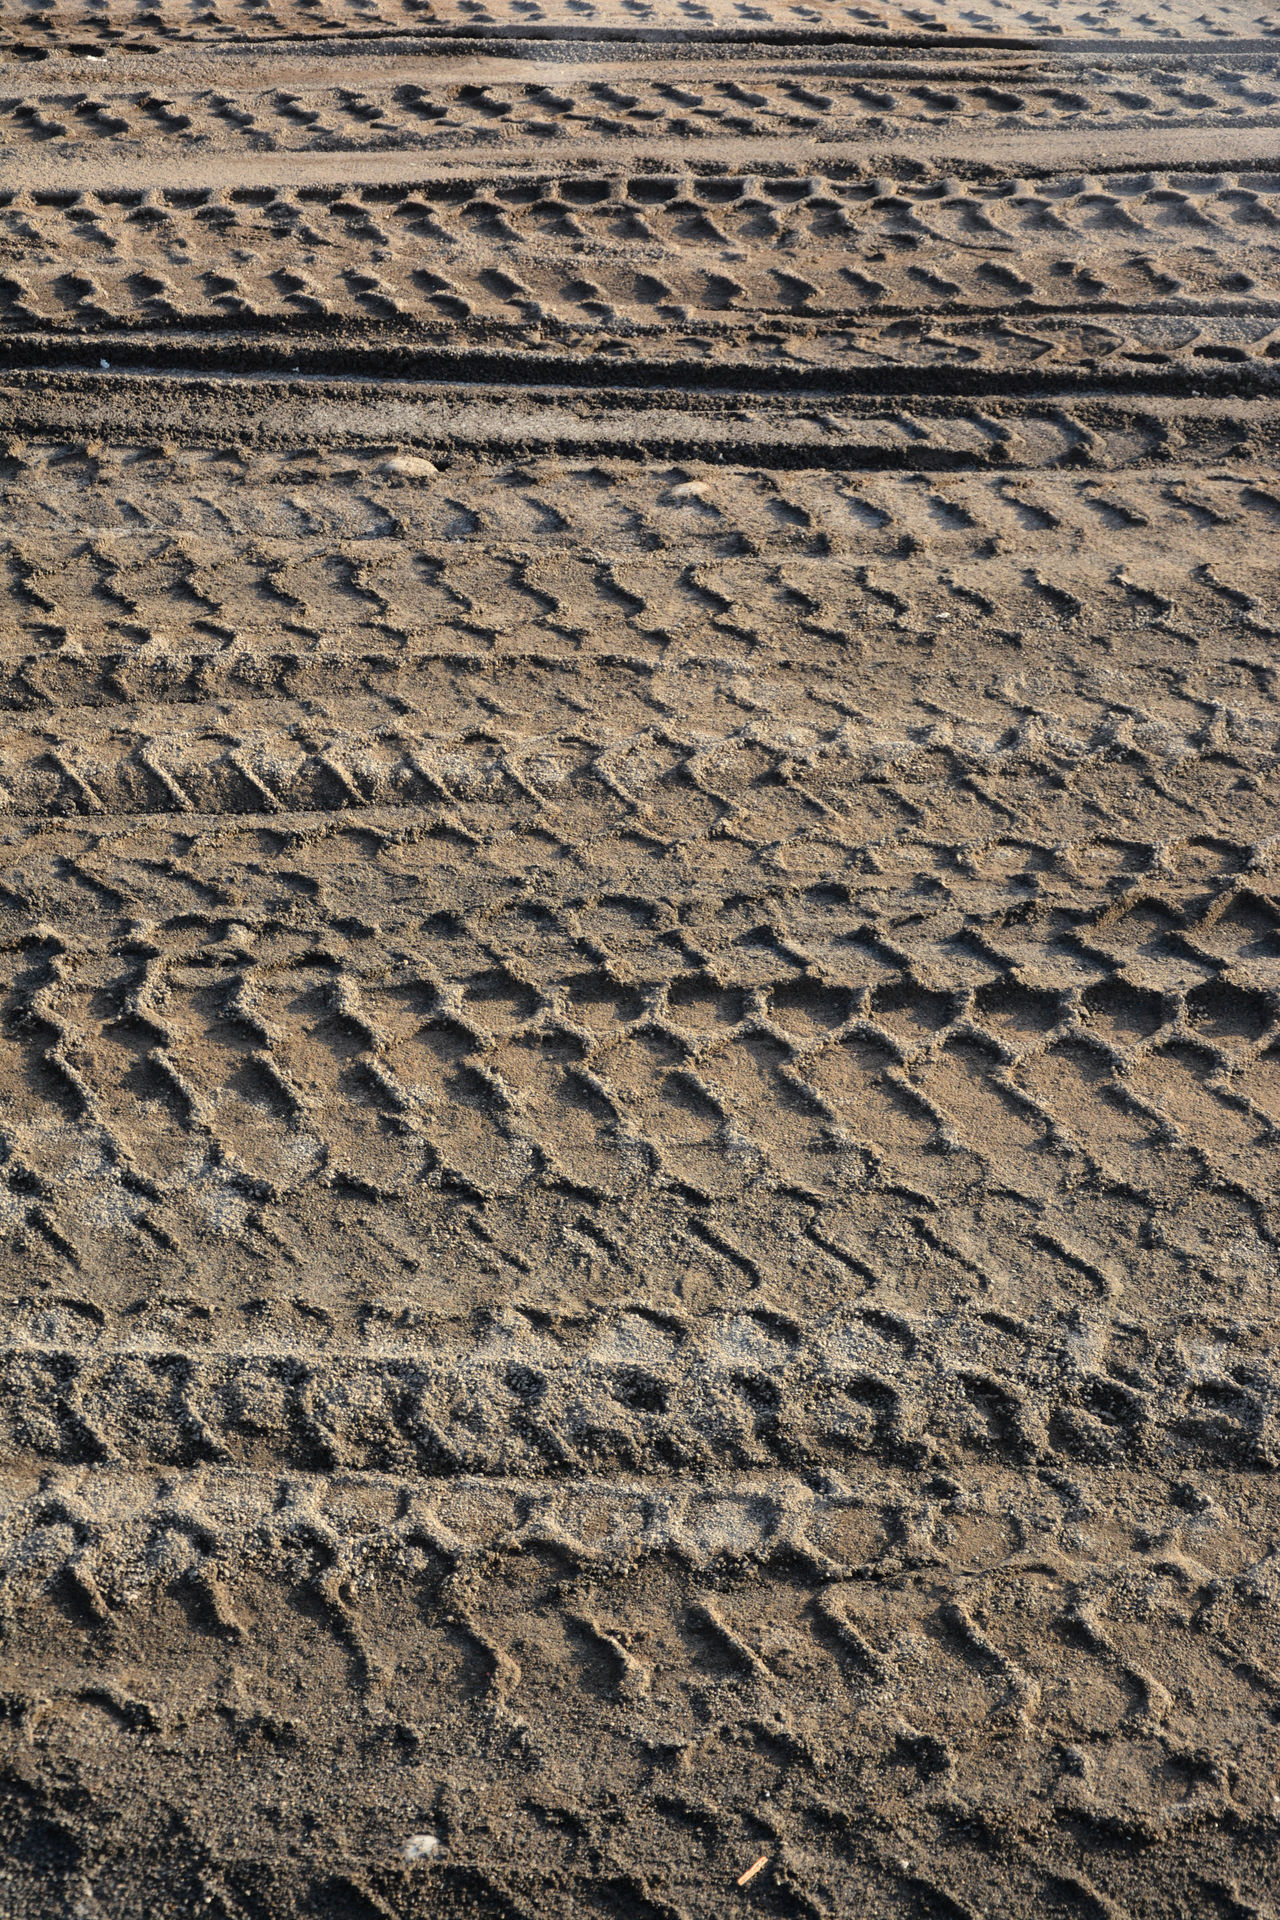 Arid Climate Backgrounds Beach Brown Close-up Day Desert Full Frame Impronte Nature No People Outdoors Pattern Pneumatic Preumatik Print Sand Sand Print Textured  Tire Print Tire Track